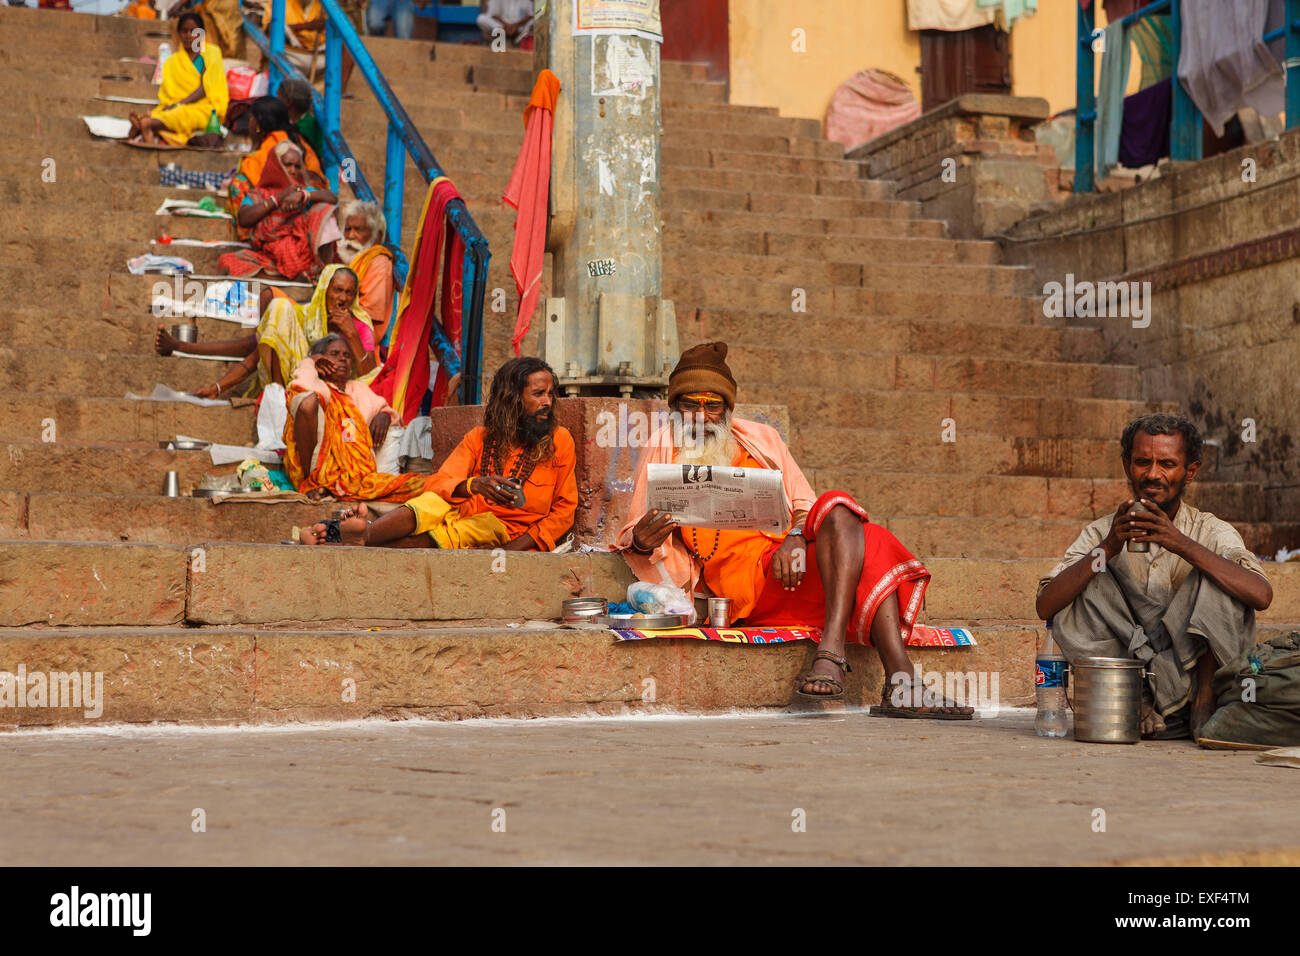 Sadhu ,whit-in his traditional dress, comfortably sits and reads Indian newspaper - Stock Image